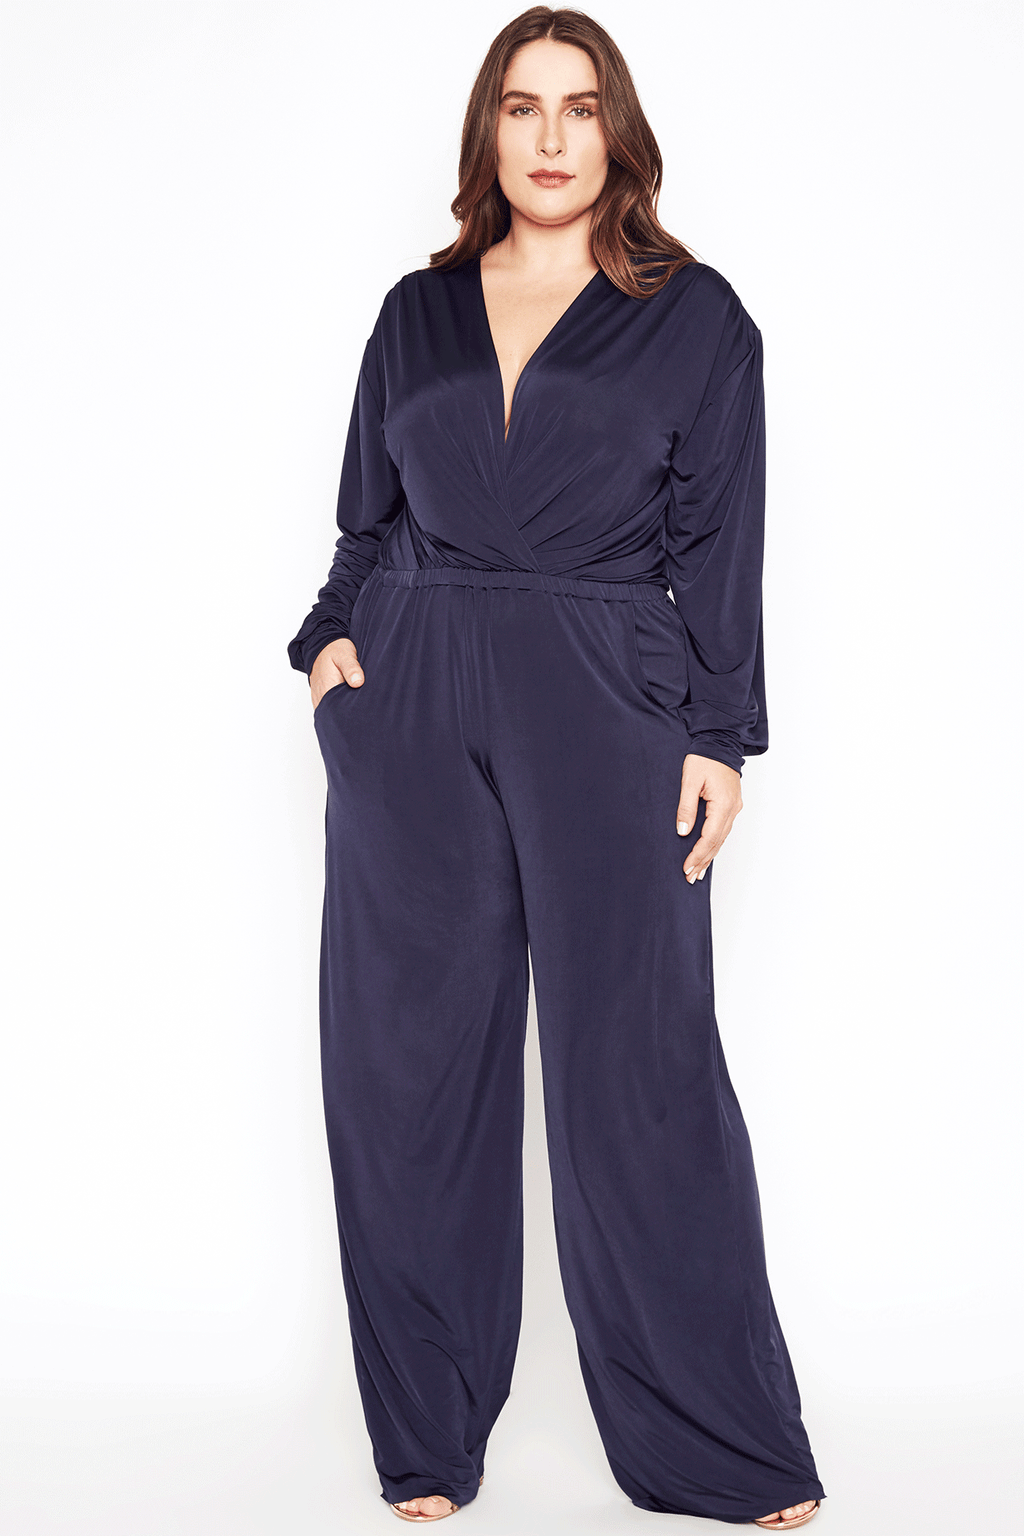 Navy Jumpsuit - Long Sleeve